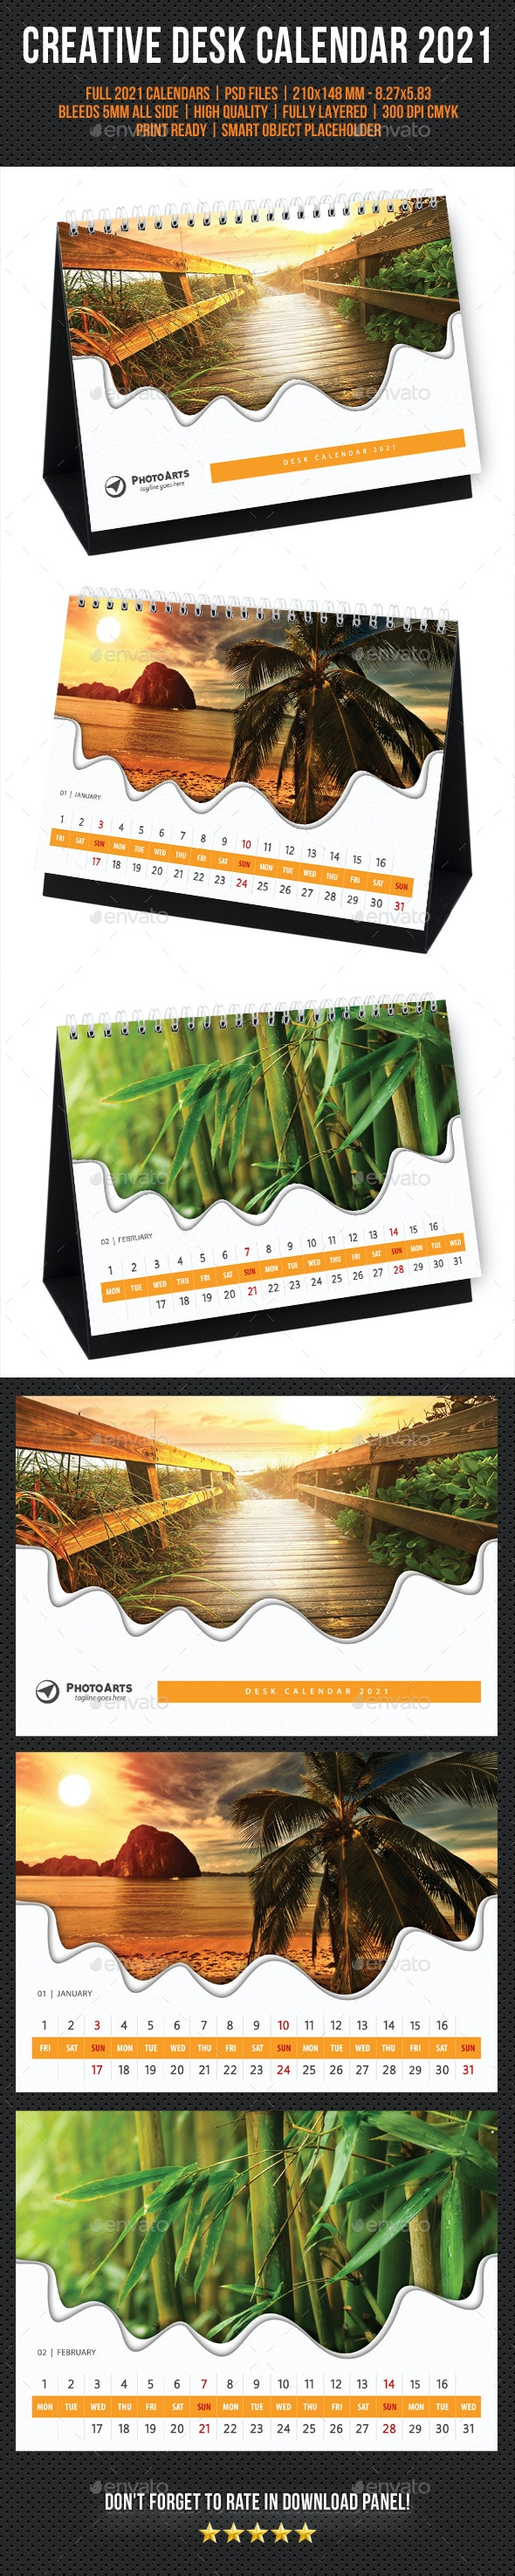 Creative Desk Calendar 2021 V34 - Calendars Stationery